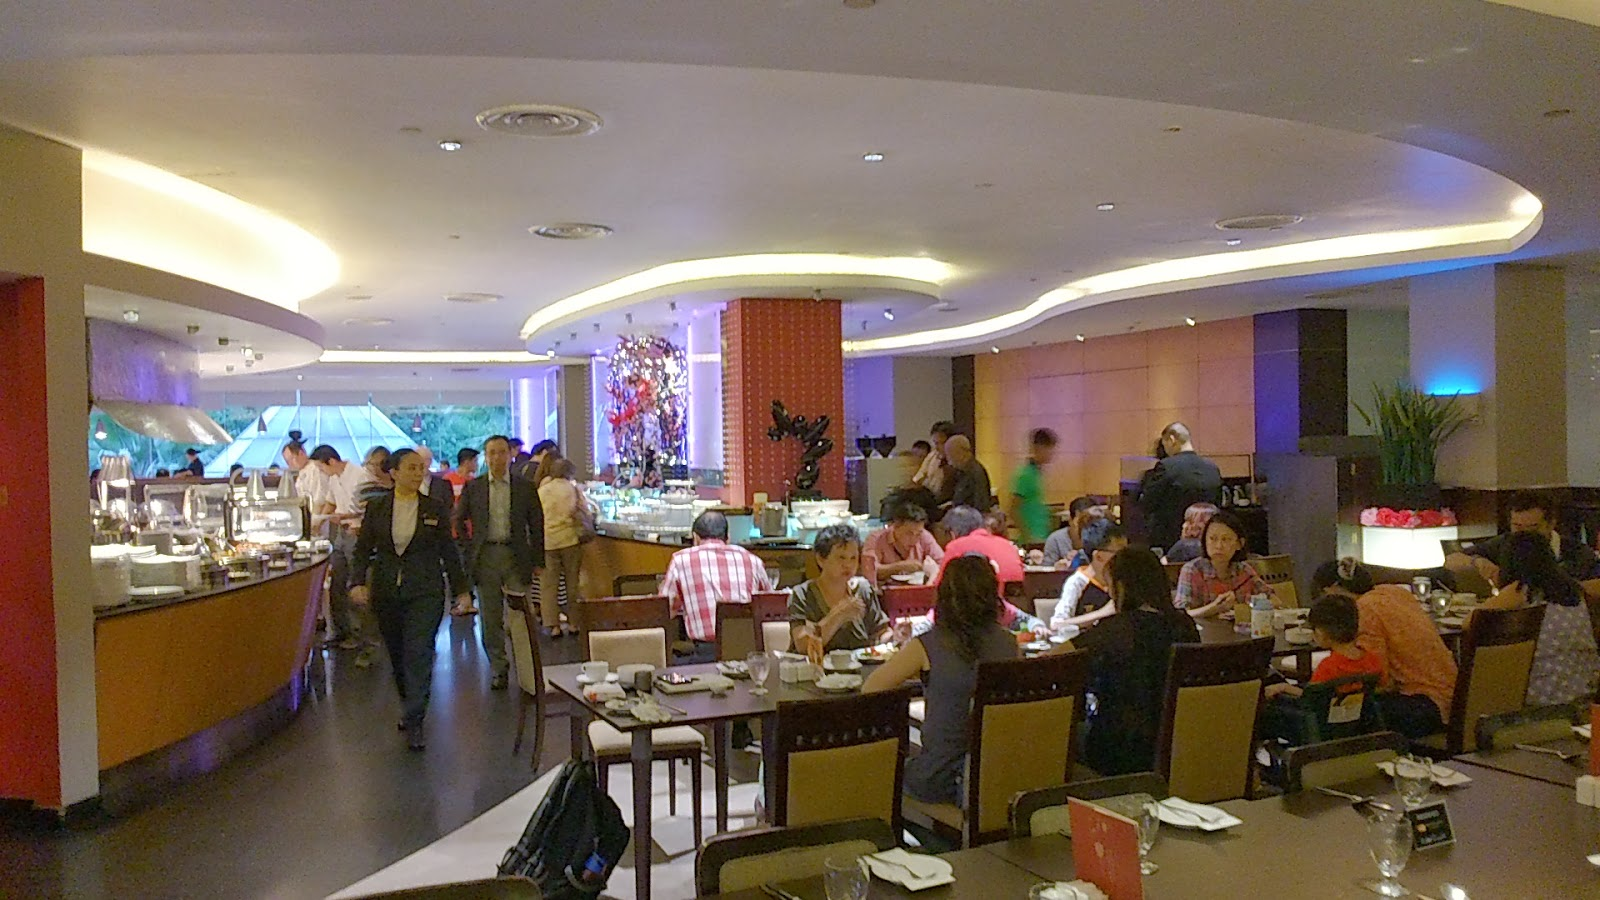 SuMMeR LoVes To Eat! Singapore Food Blog: Buffet Dinner at The Square